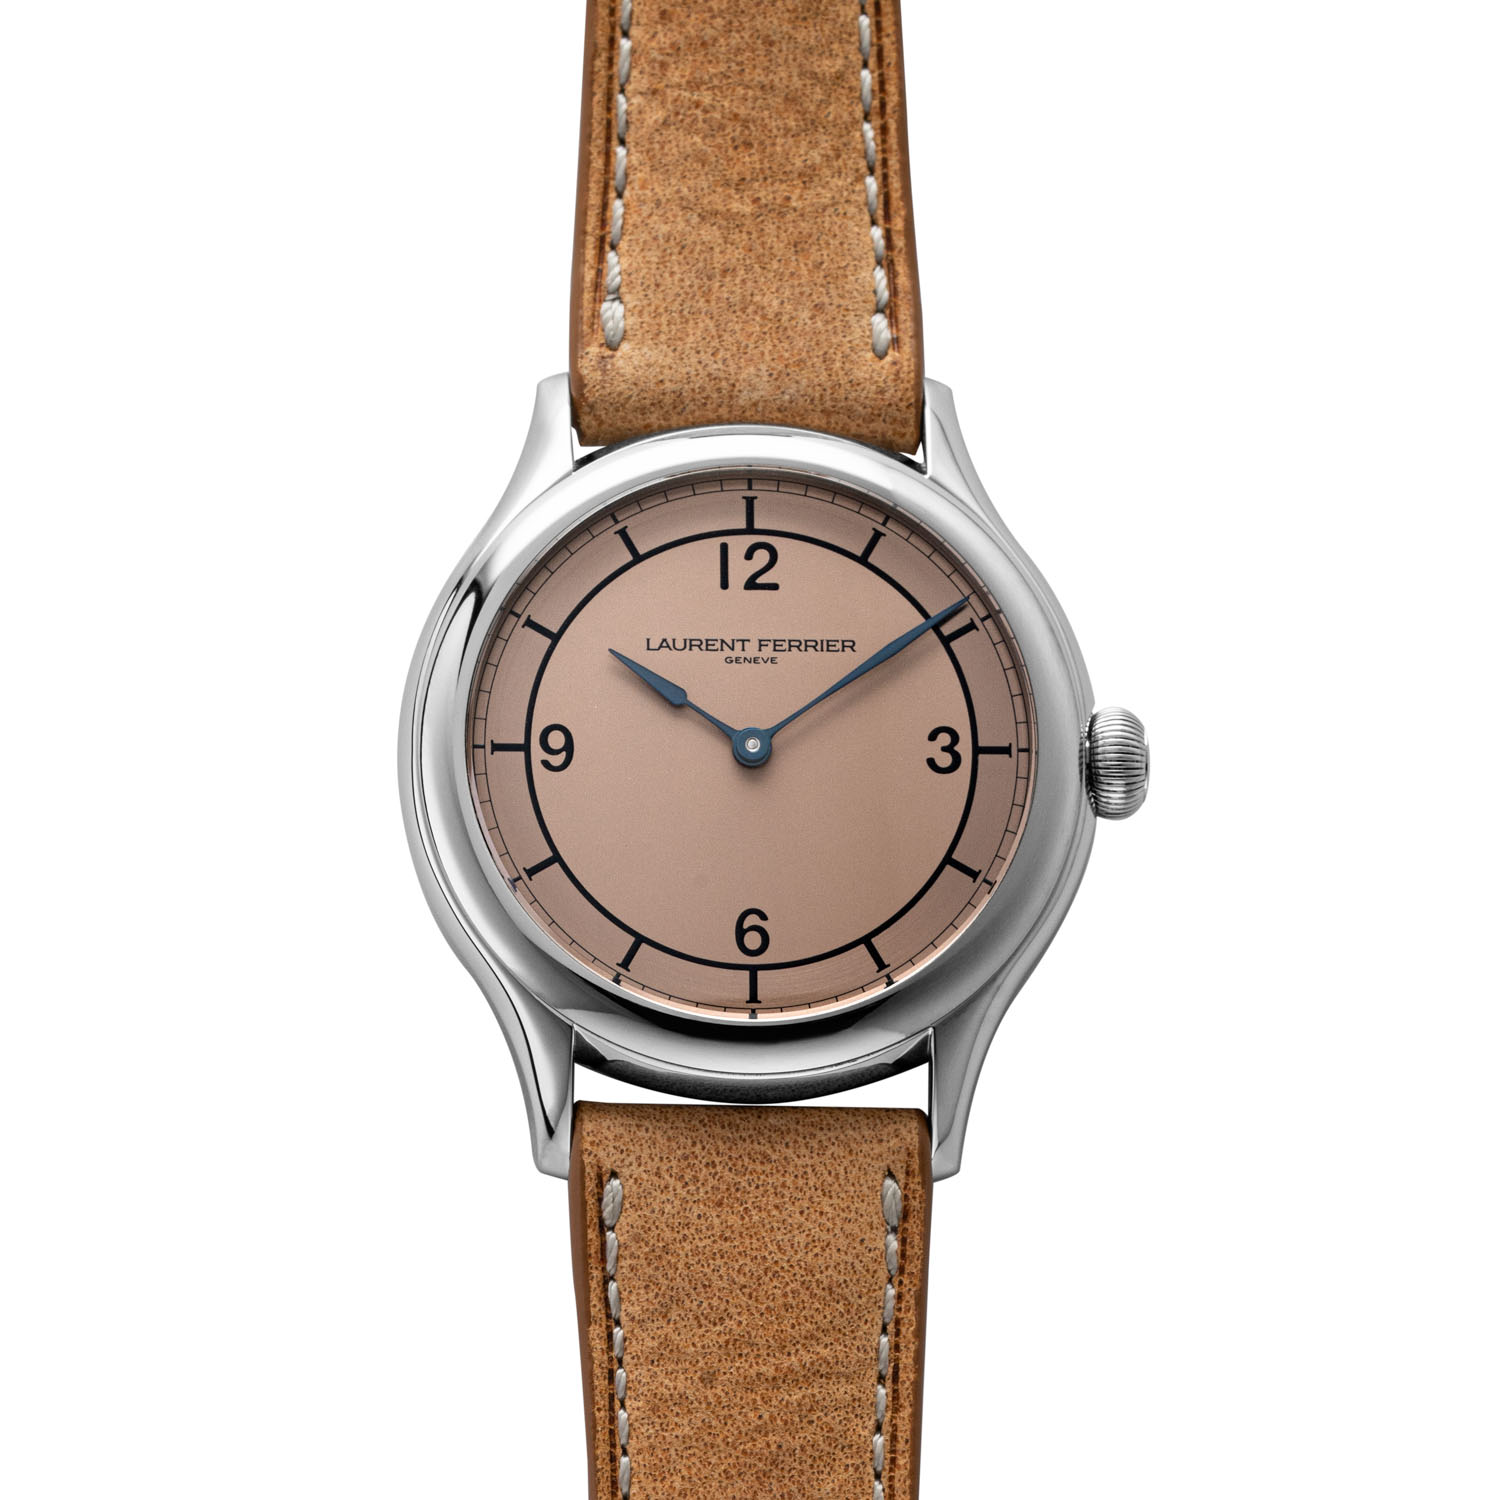 The Laurent Ferrier Steel Galet Micro-Rotor Salmon Dial pièce unique for Revolution (©Revolution)